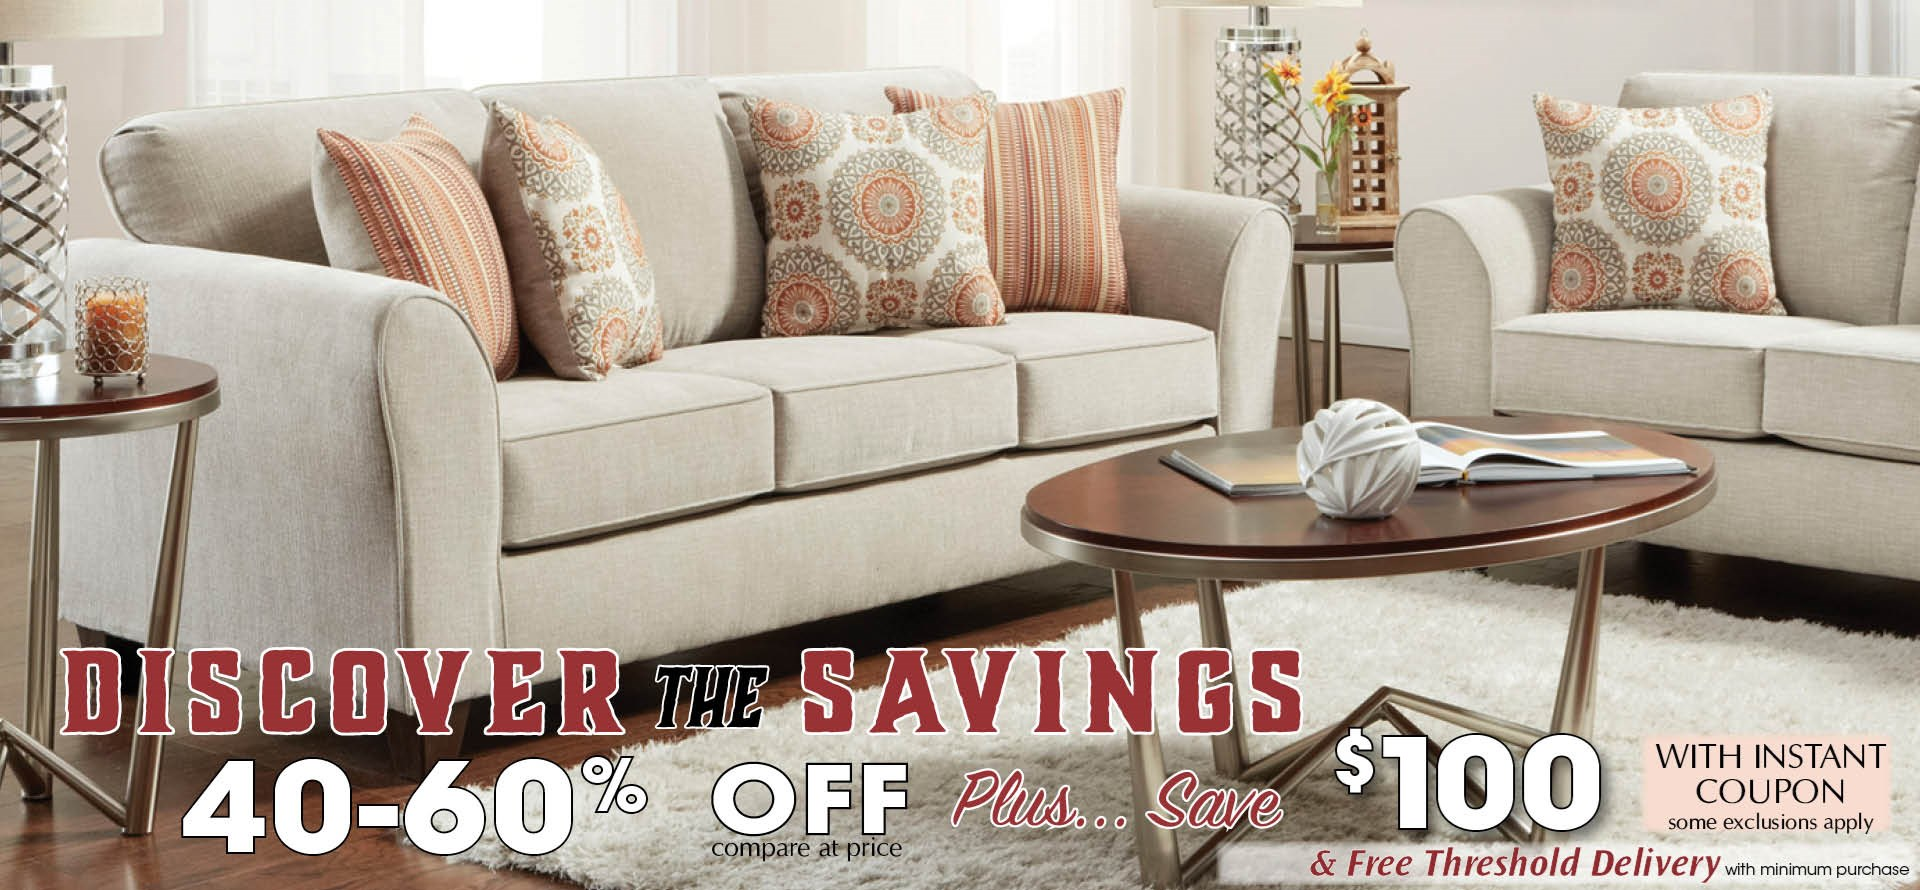 Discover 40-60% Off Savings plus get a $100 Instant Coupon!